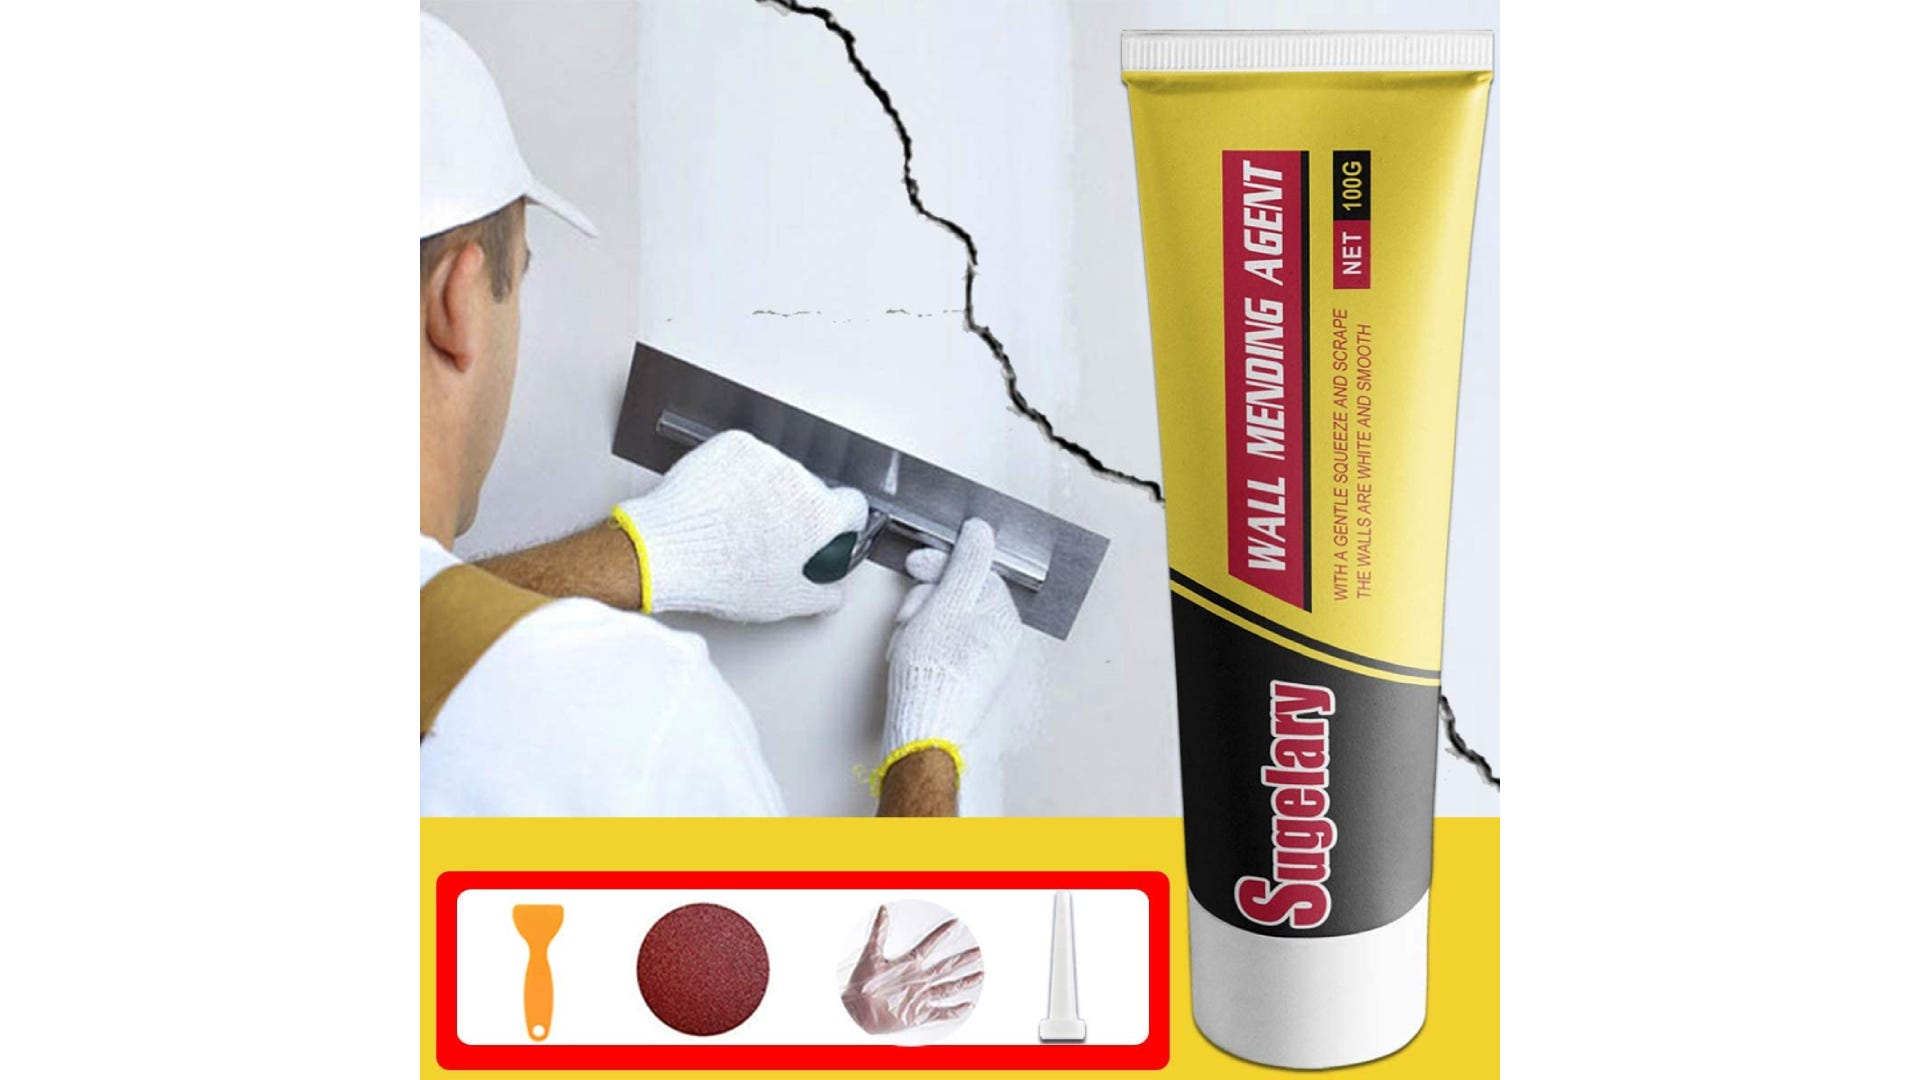 drywall repair tube with additional tools displayed and being used in background